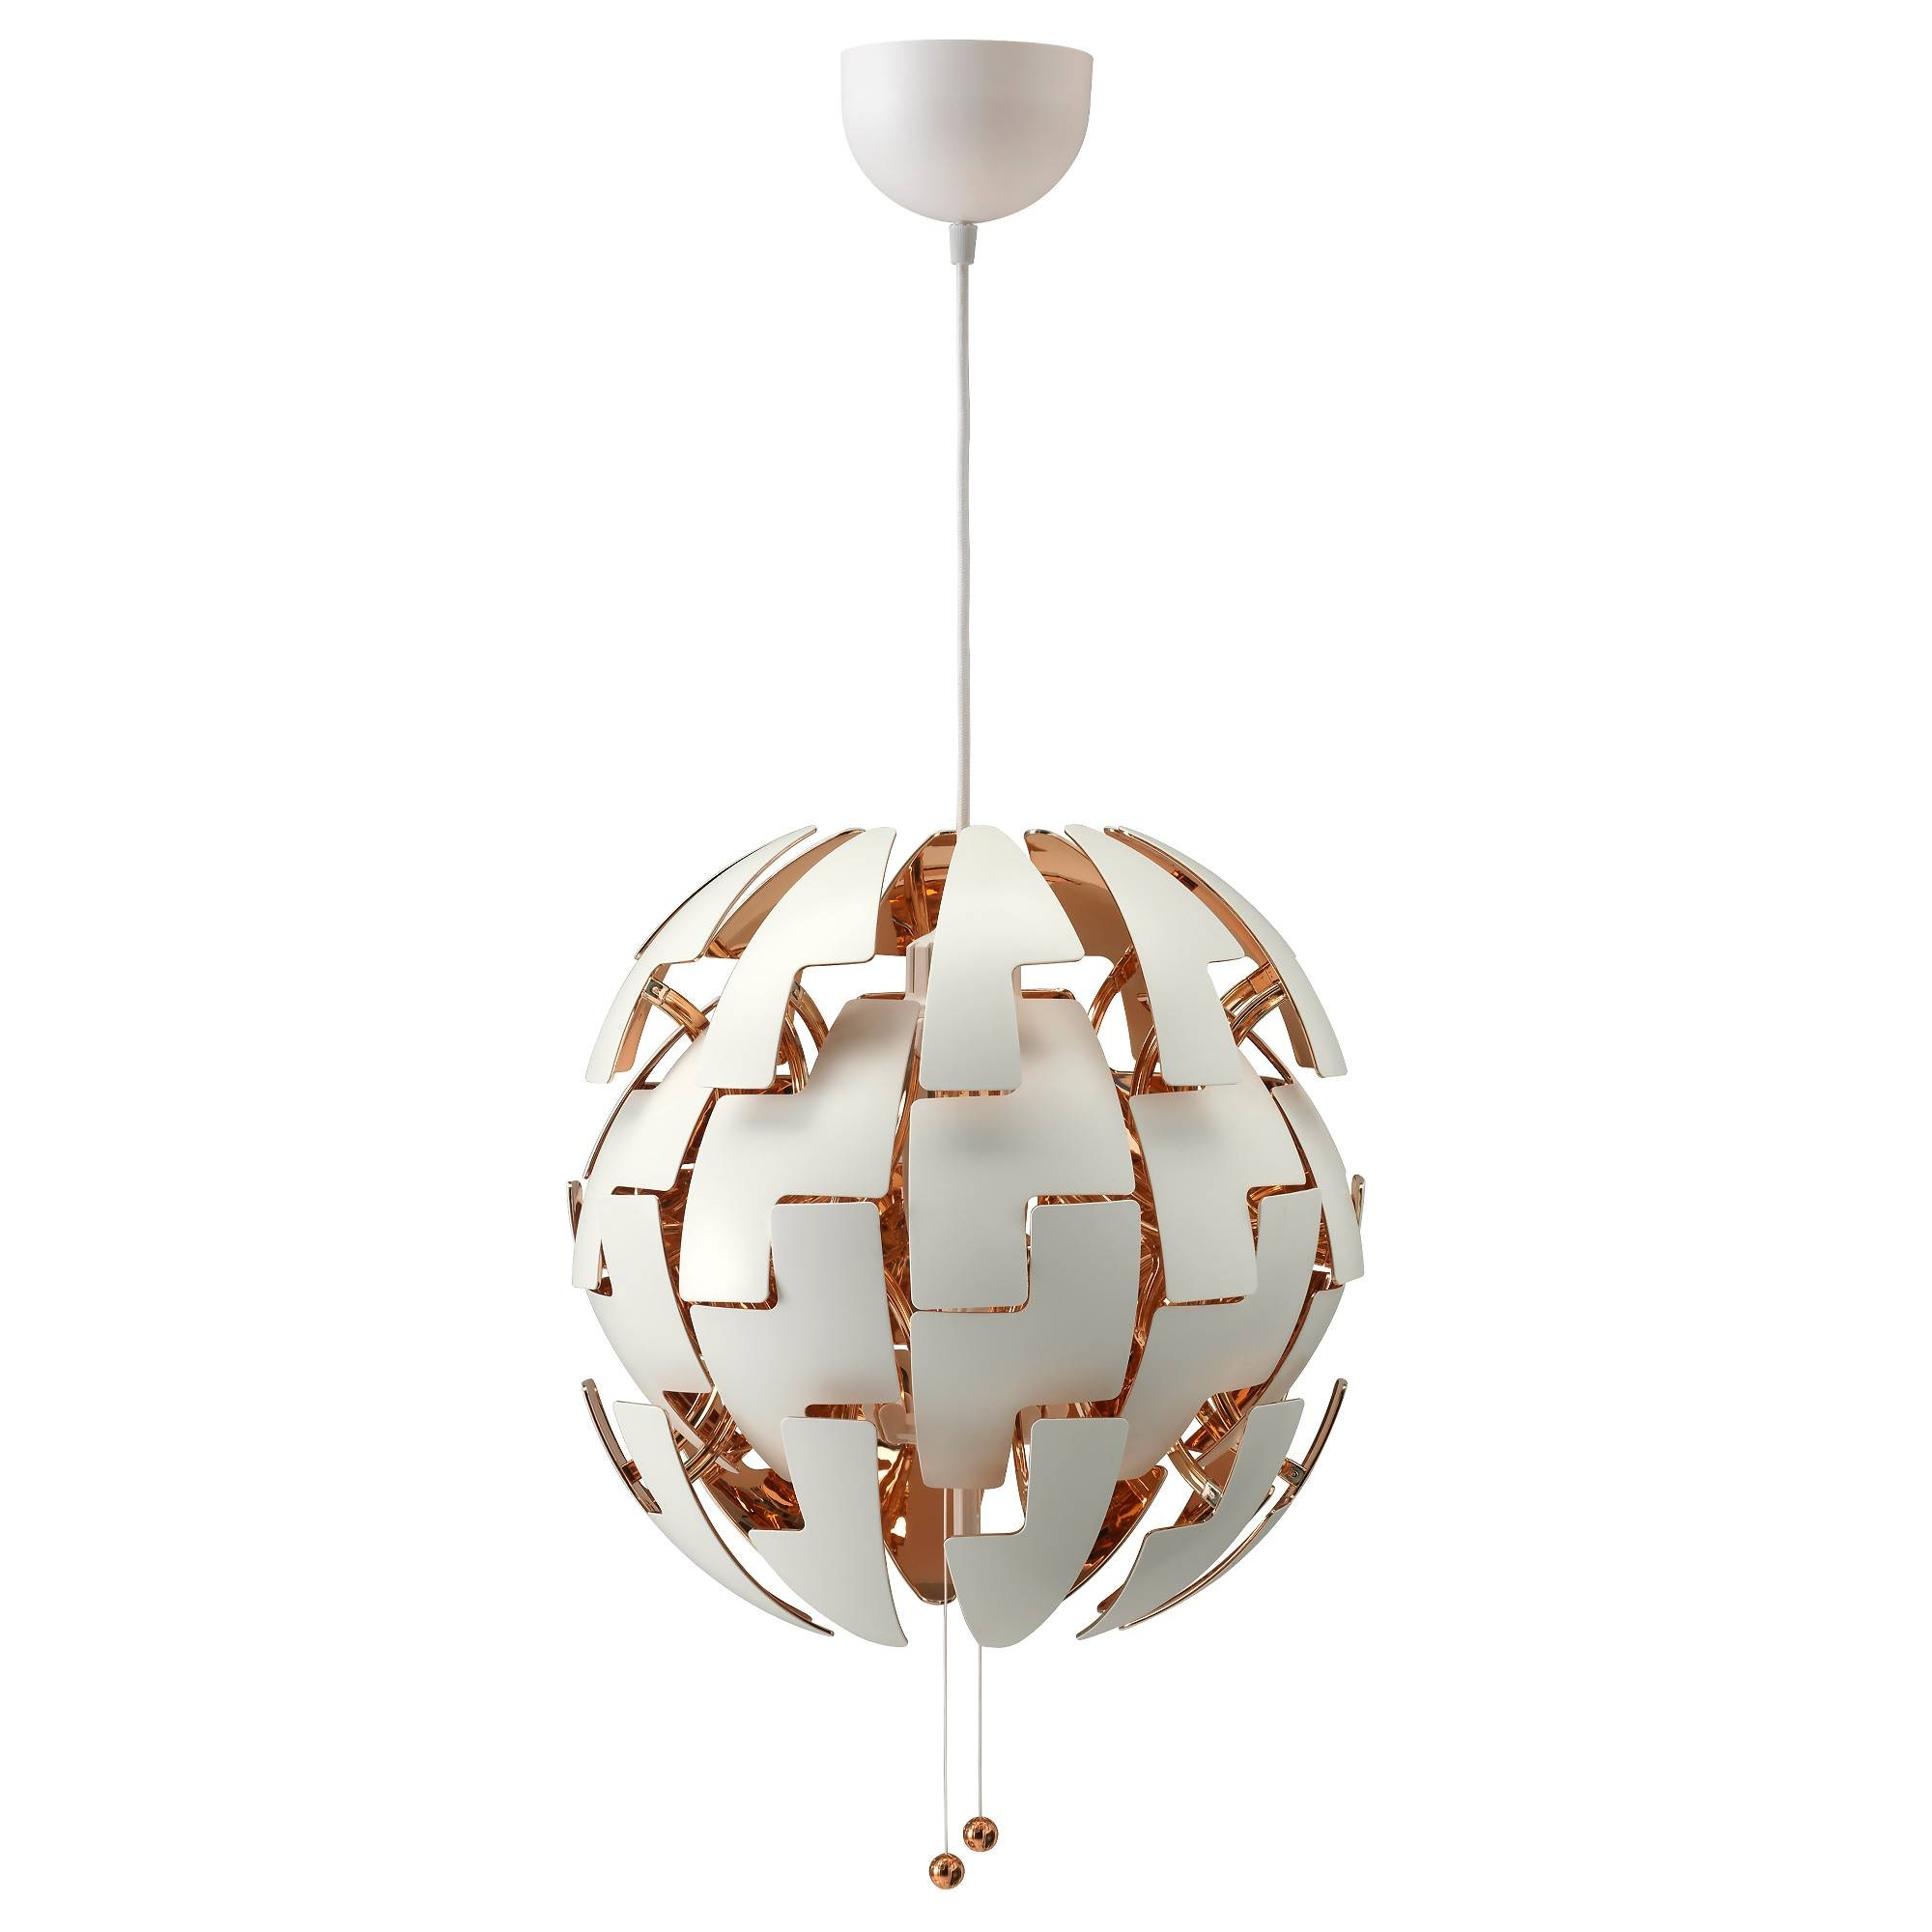 Ikea Ps 2014 Pendant Lamp White/copper-Colour - Ikea in Ikea Pendent Lights (Image 9 of 15)